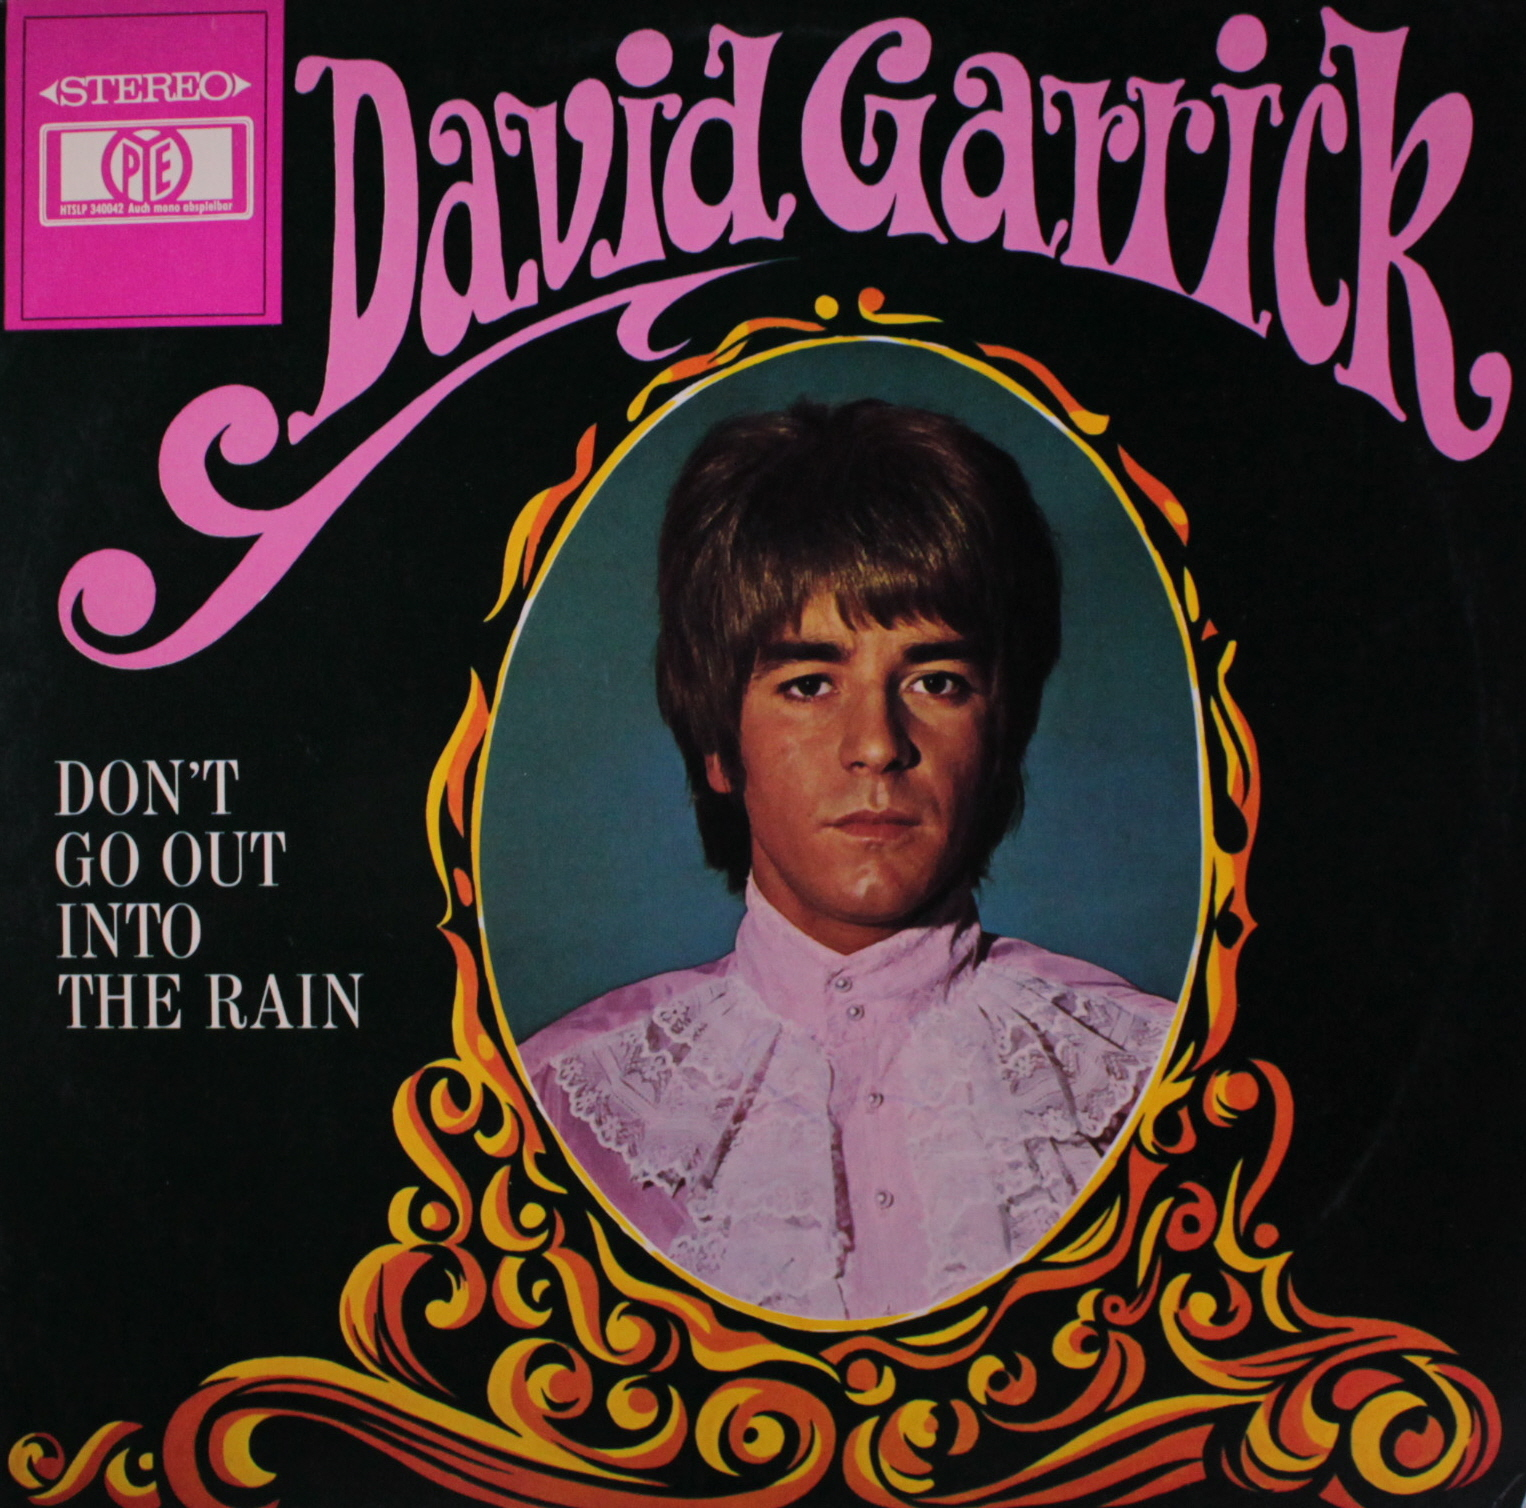 david_garrick-dont_go_out_into_the_rain_a